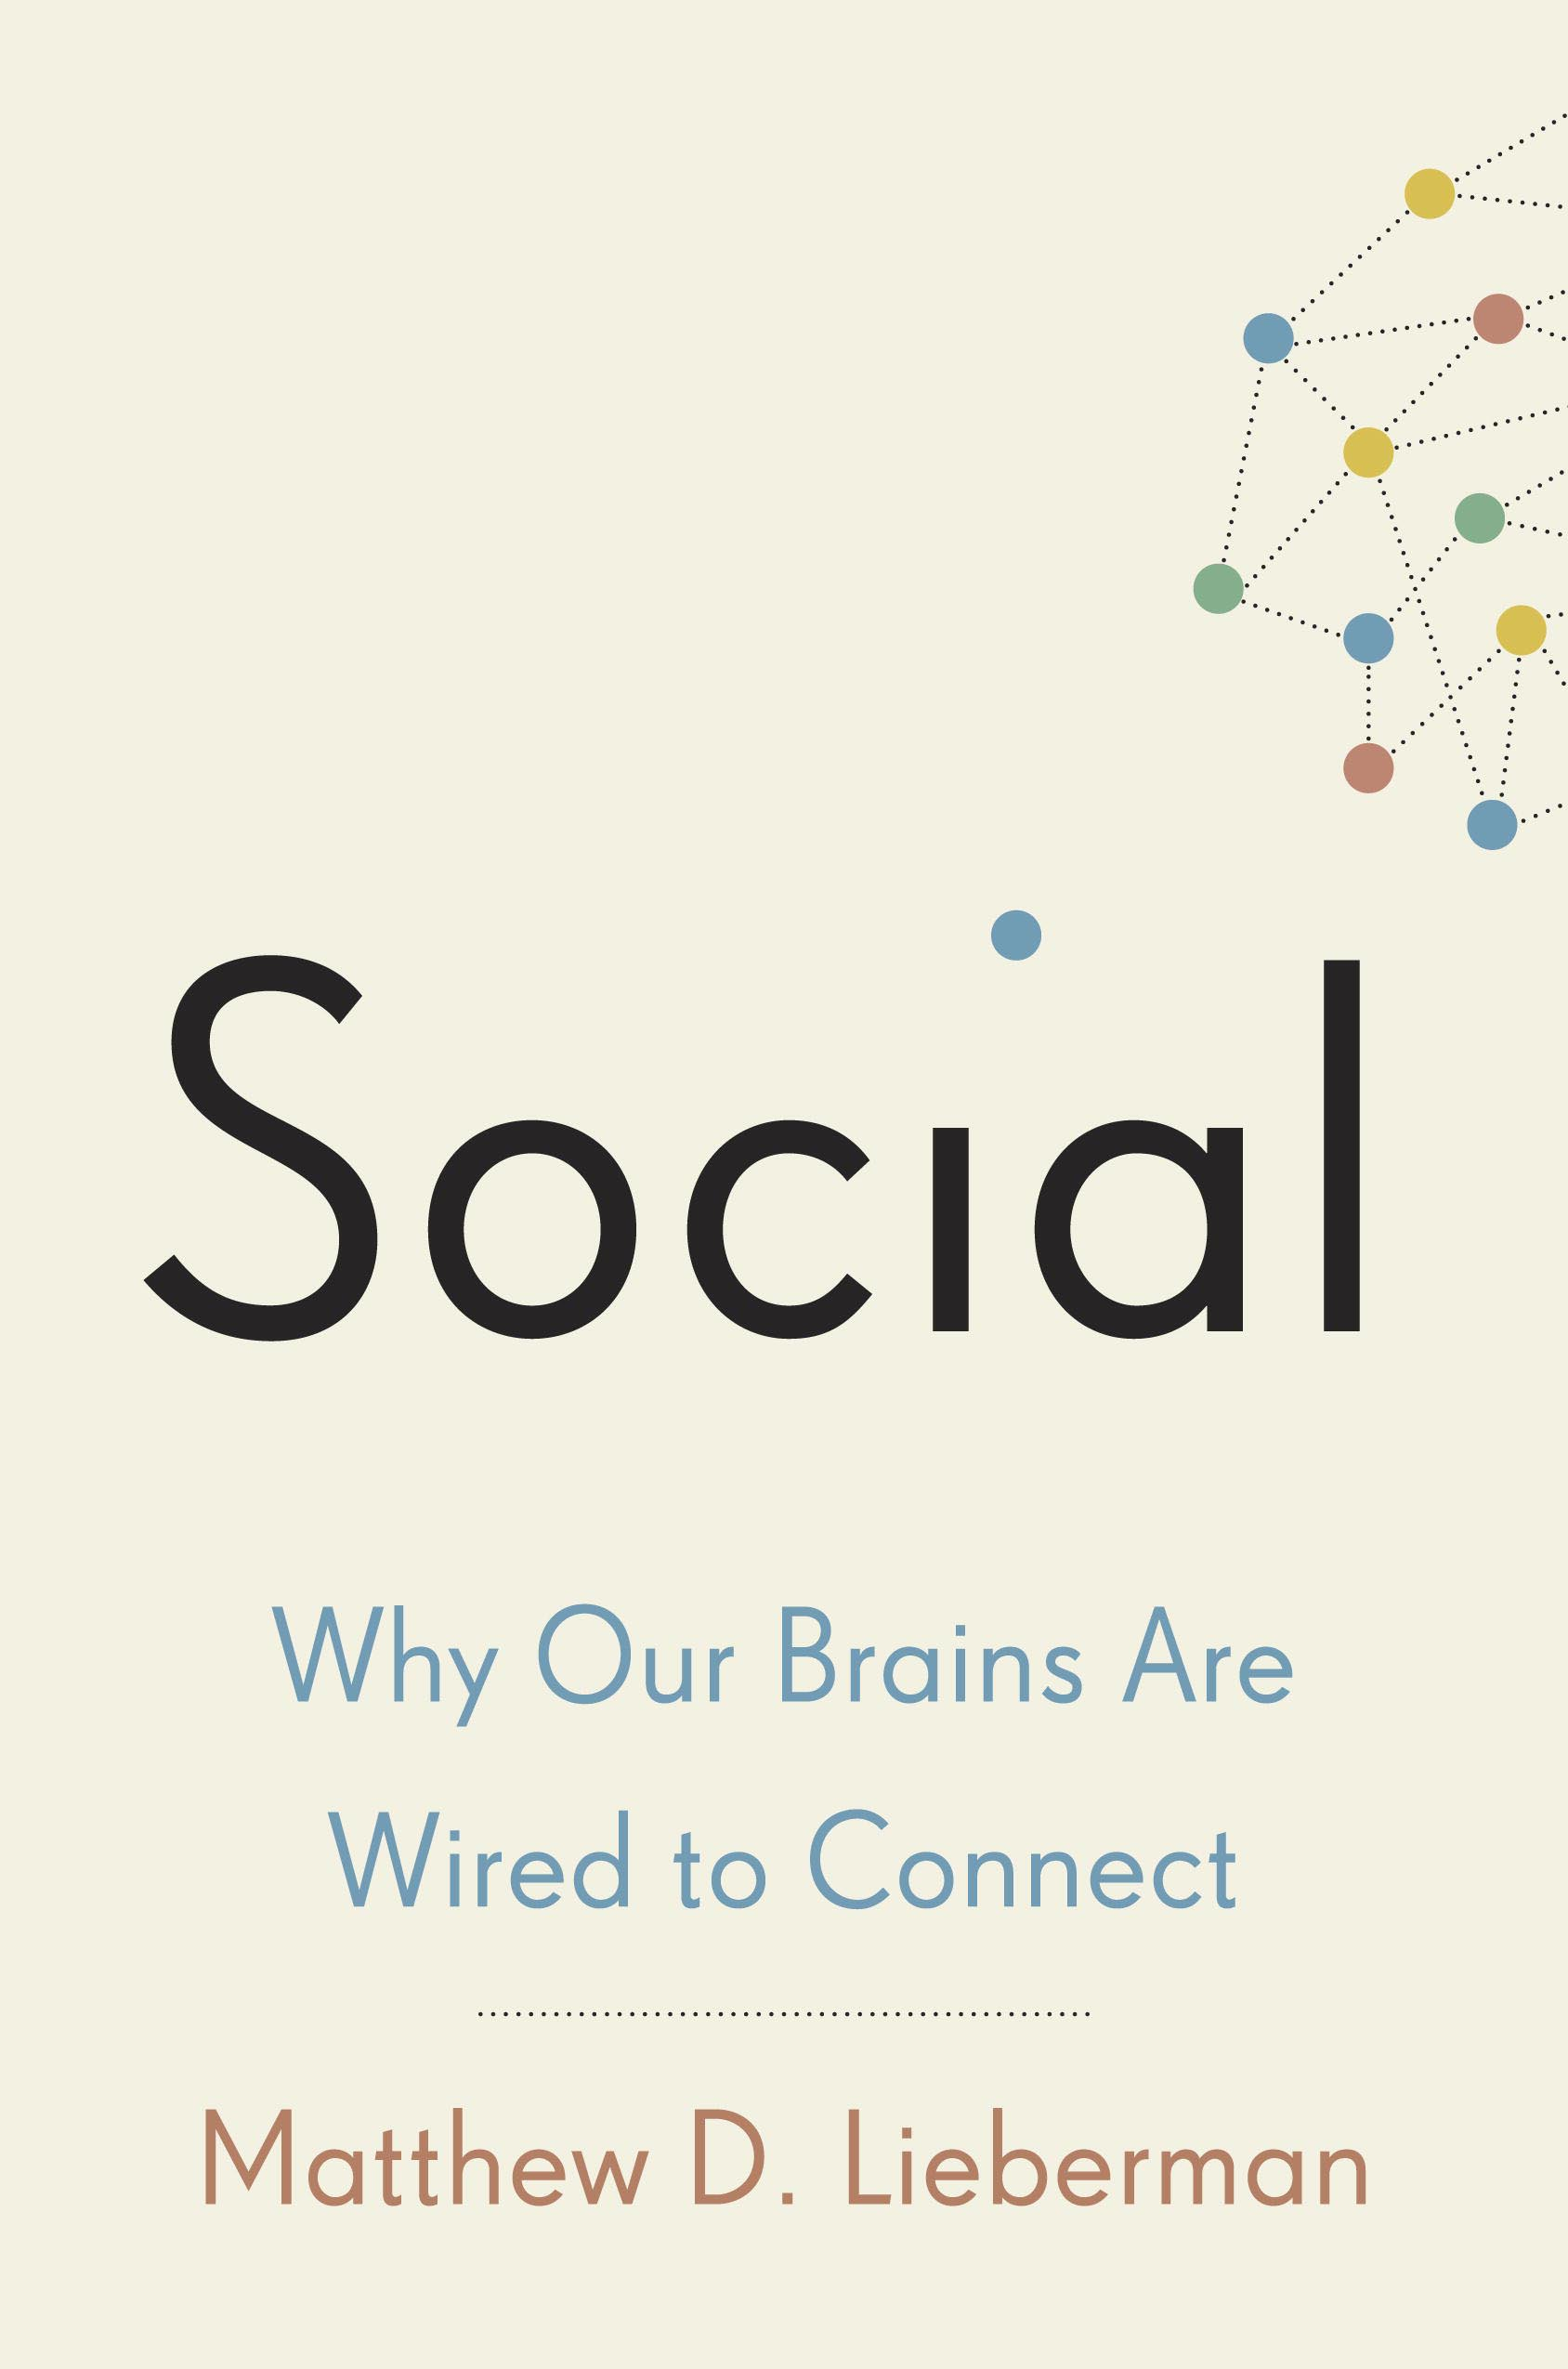 SCN Lab: Social: Why Our Brains Are Wired To Conect